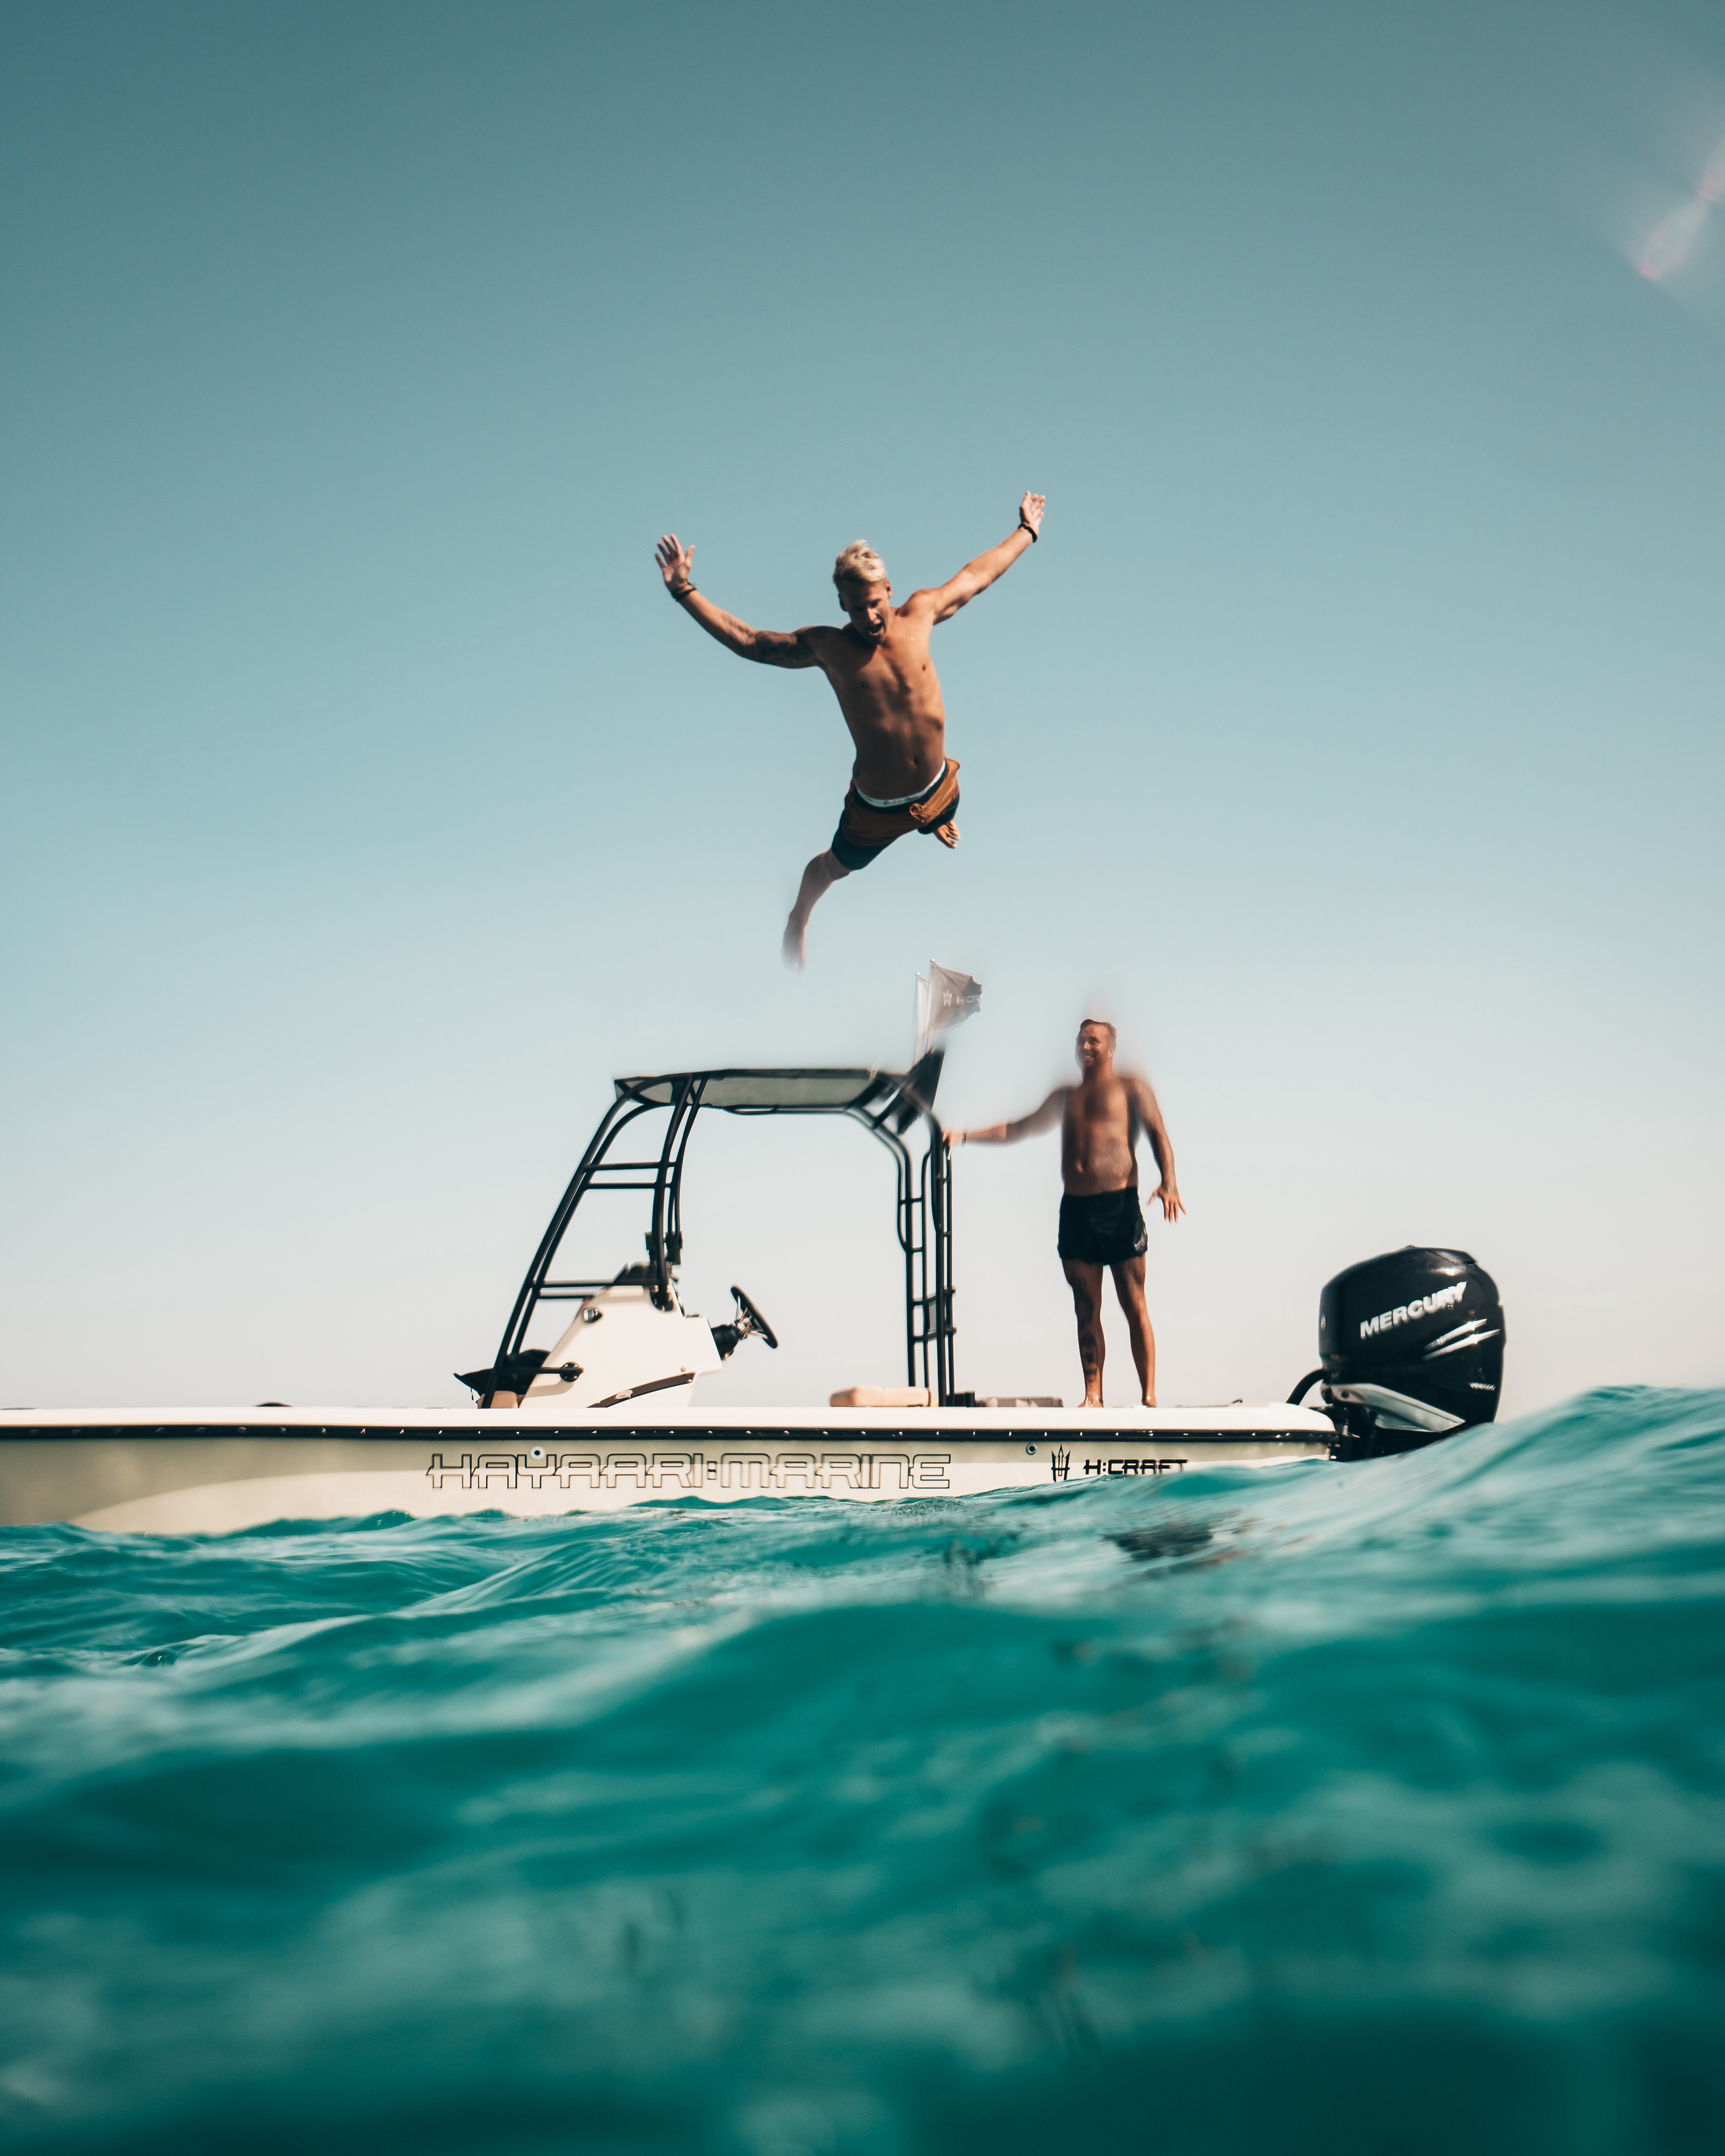 Photo of a man jumping off a small boat and who appears to be about to do a bellyflop into the water.